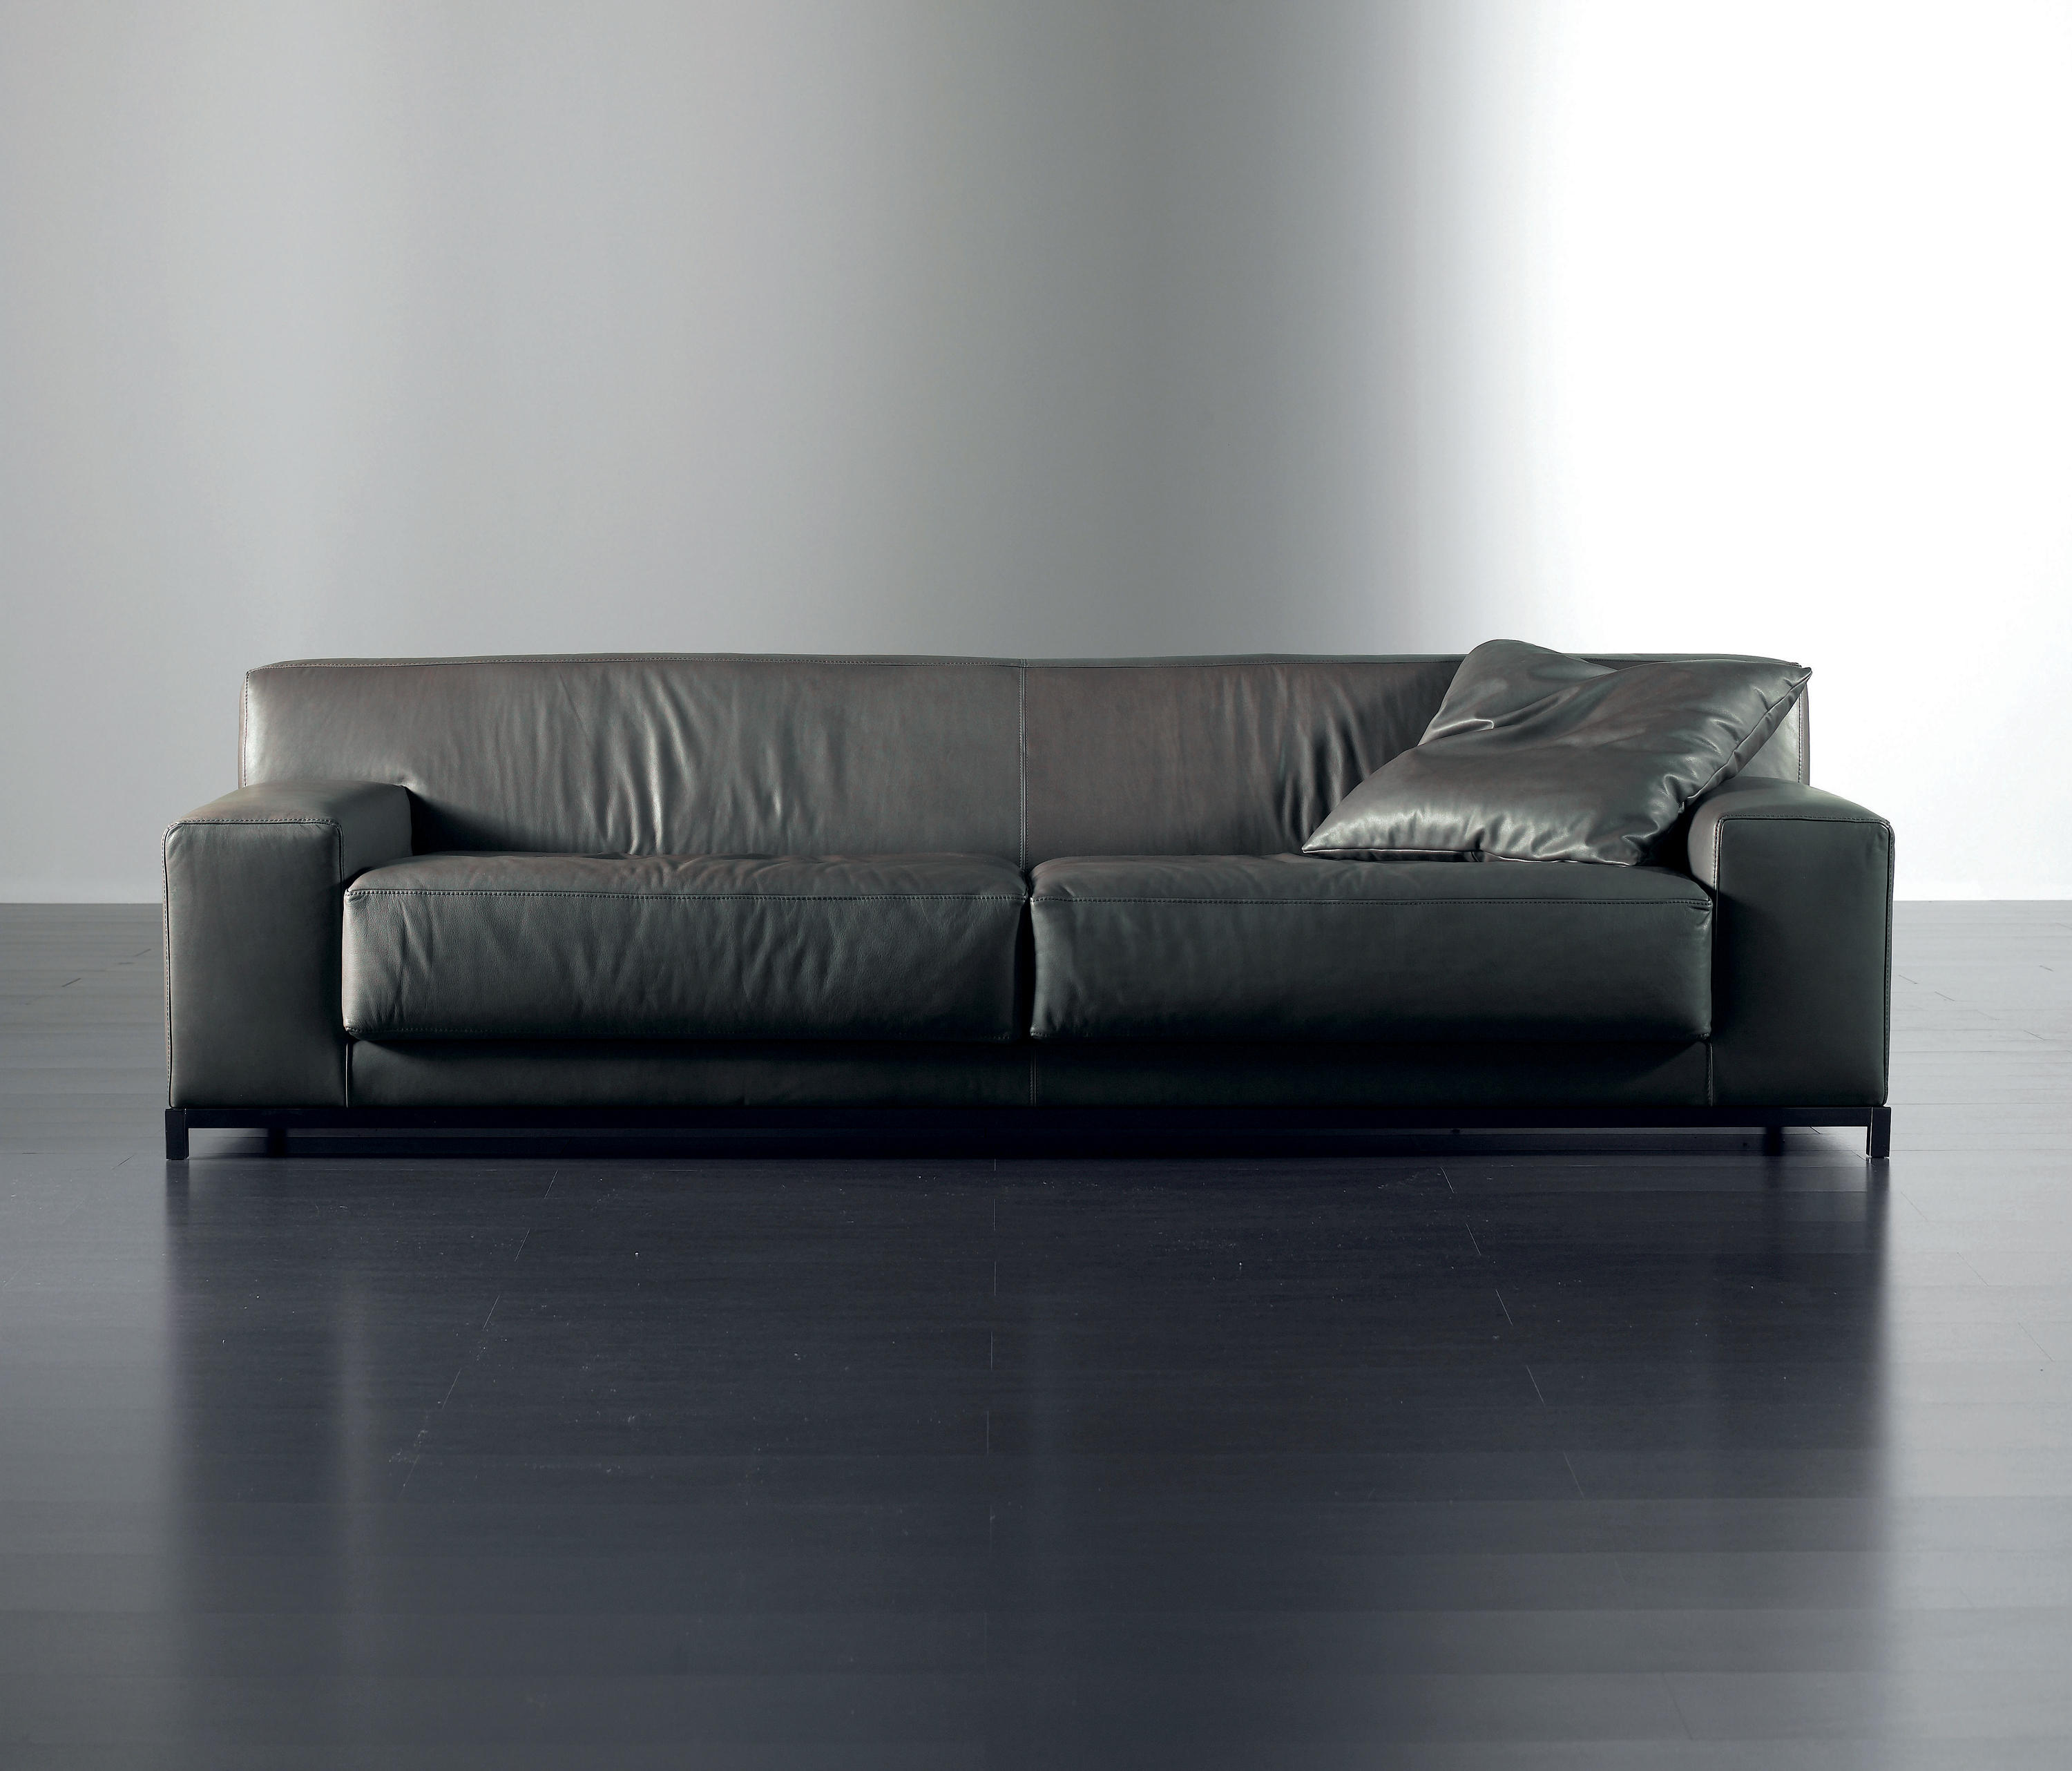 Frieman sofa lounge sofas from meridiani architonic frieman sofa by meridiani lounge sofas parisarafo Image collections